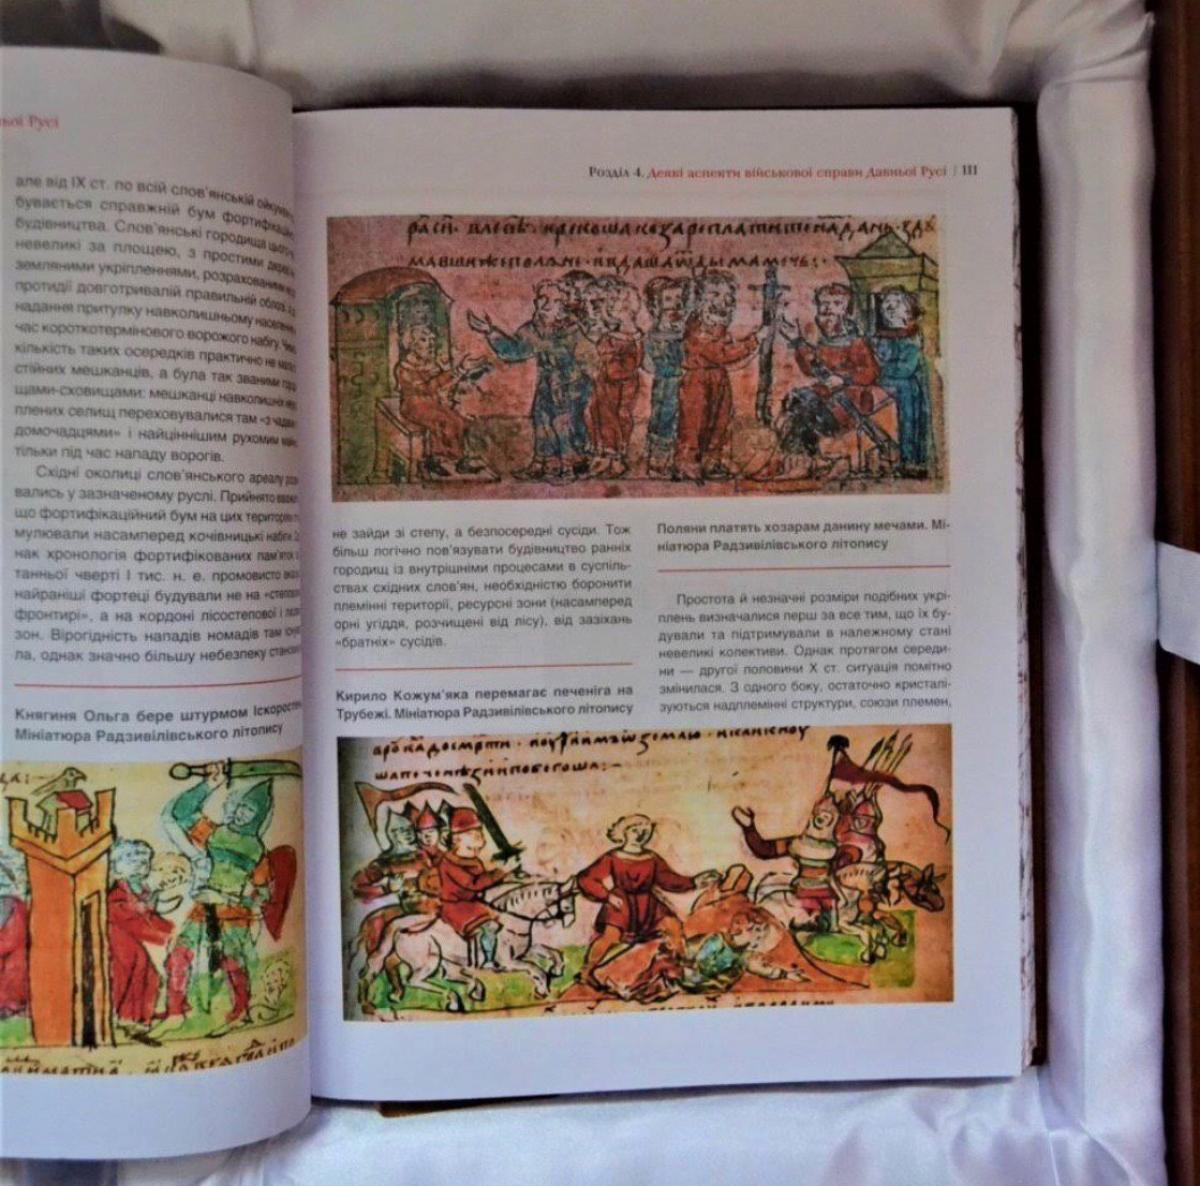 The book History of the Ukrainian army  in a gift box. Photo №3. | Narodnyi dim Ukraine